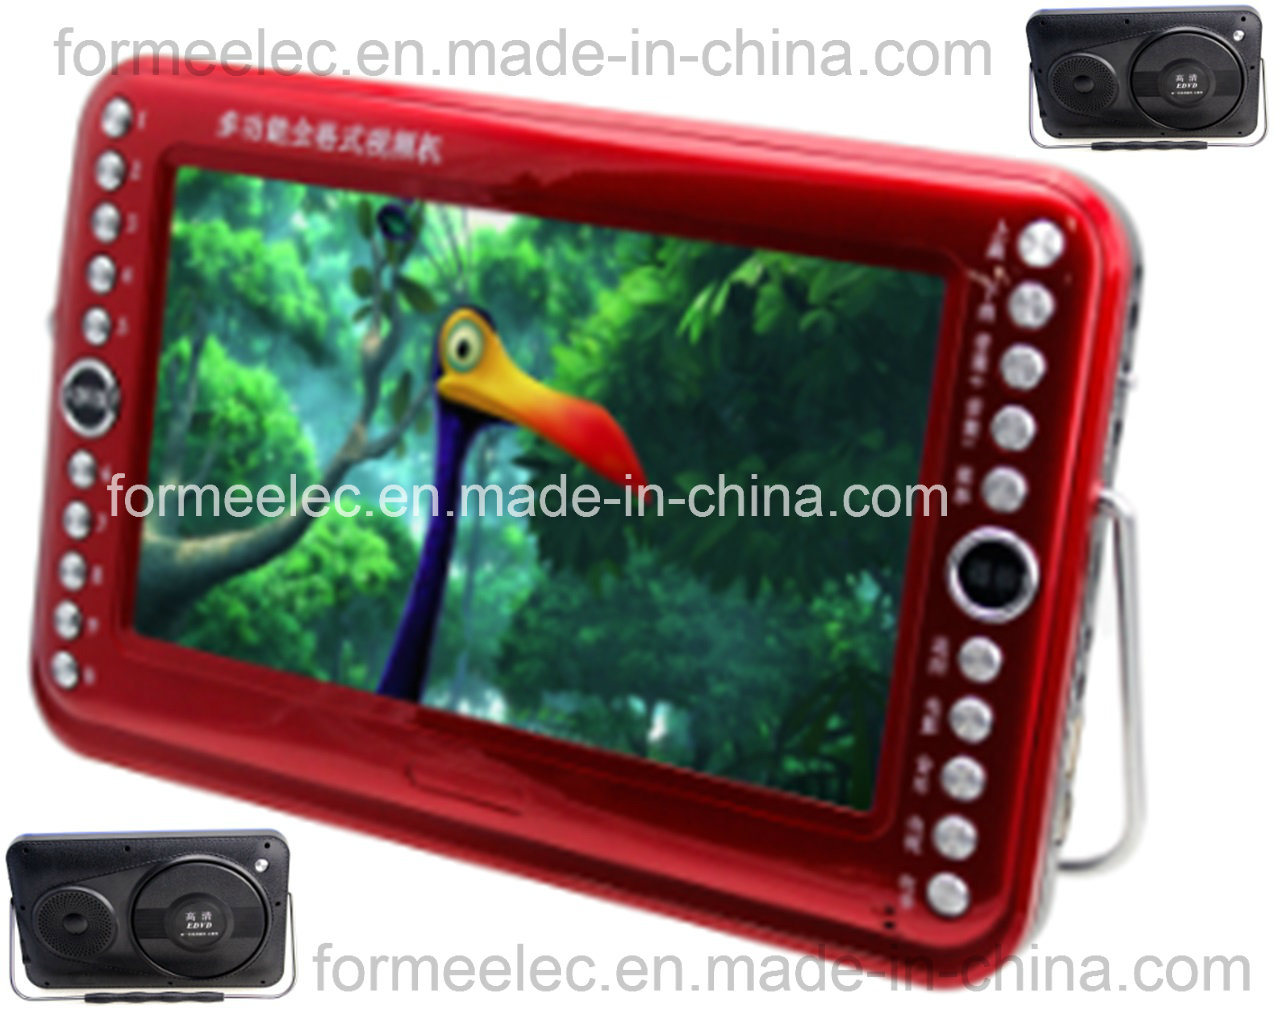 China 9 Portable Tv Lcd Portable Dvd Player With Fm China